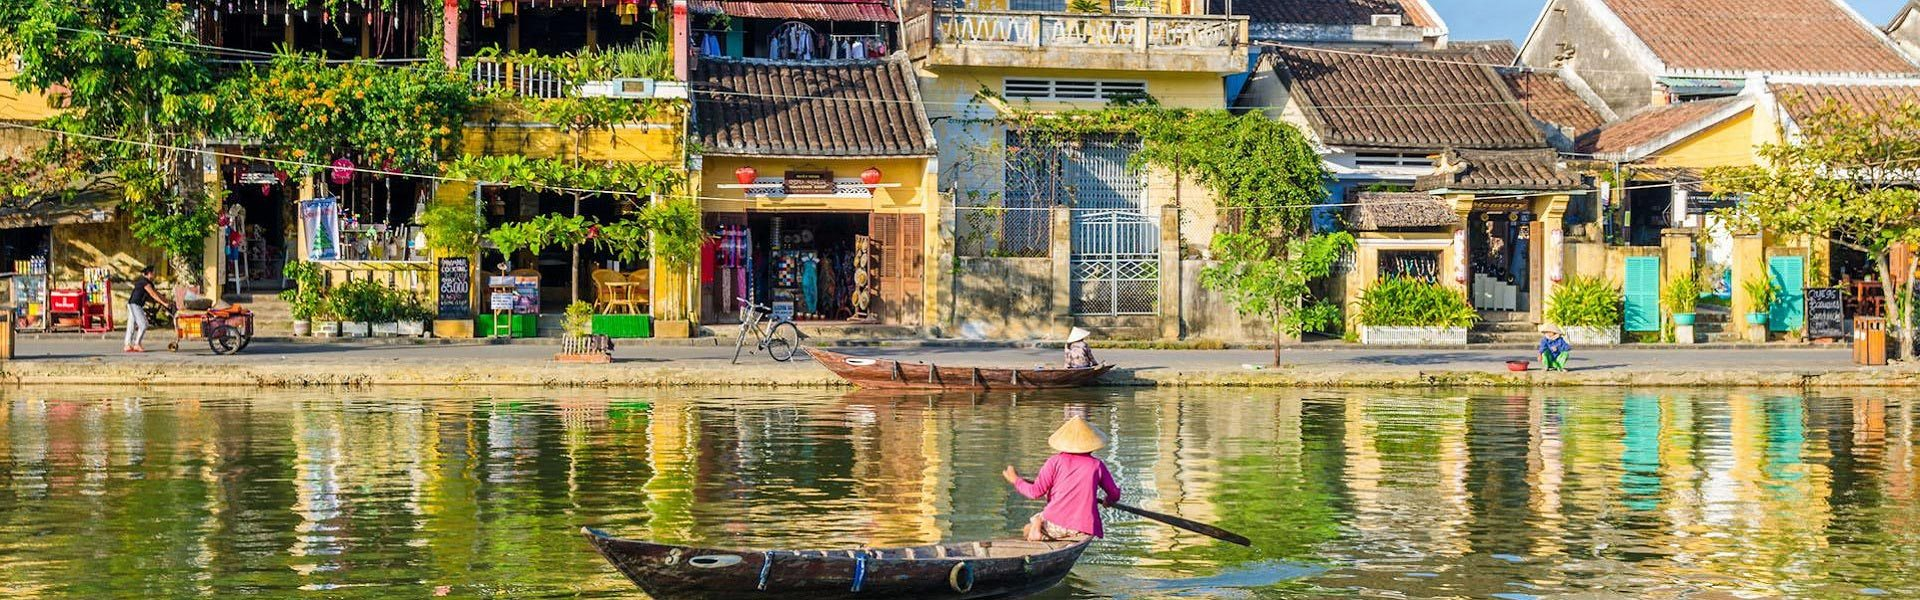 DEC01 Vietnam Reise